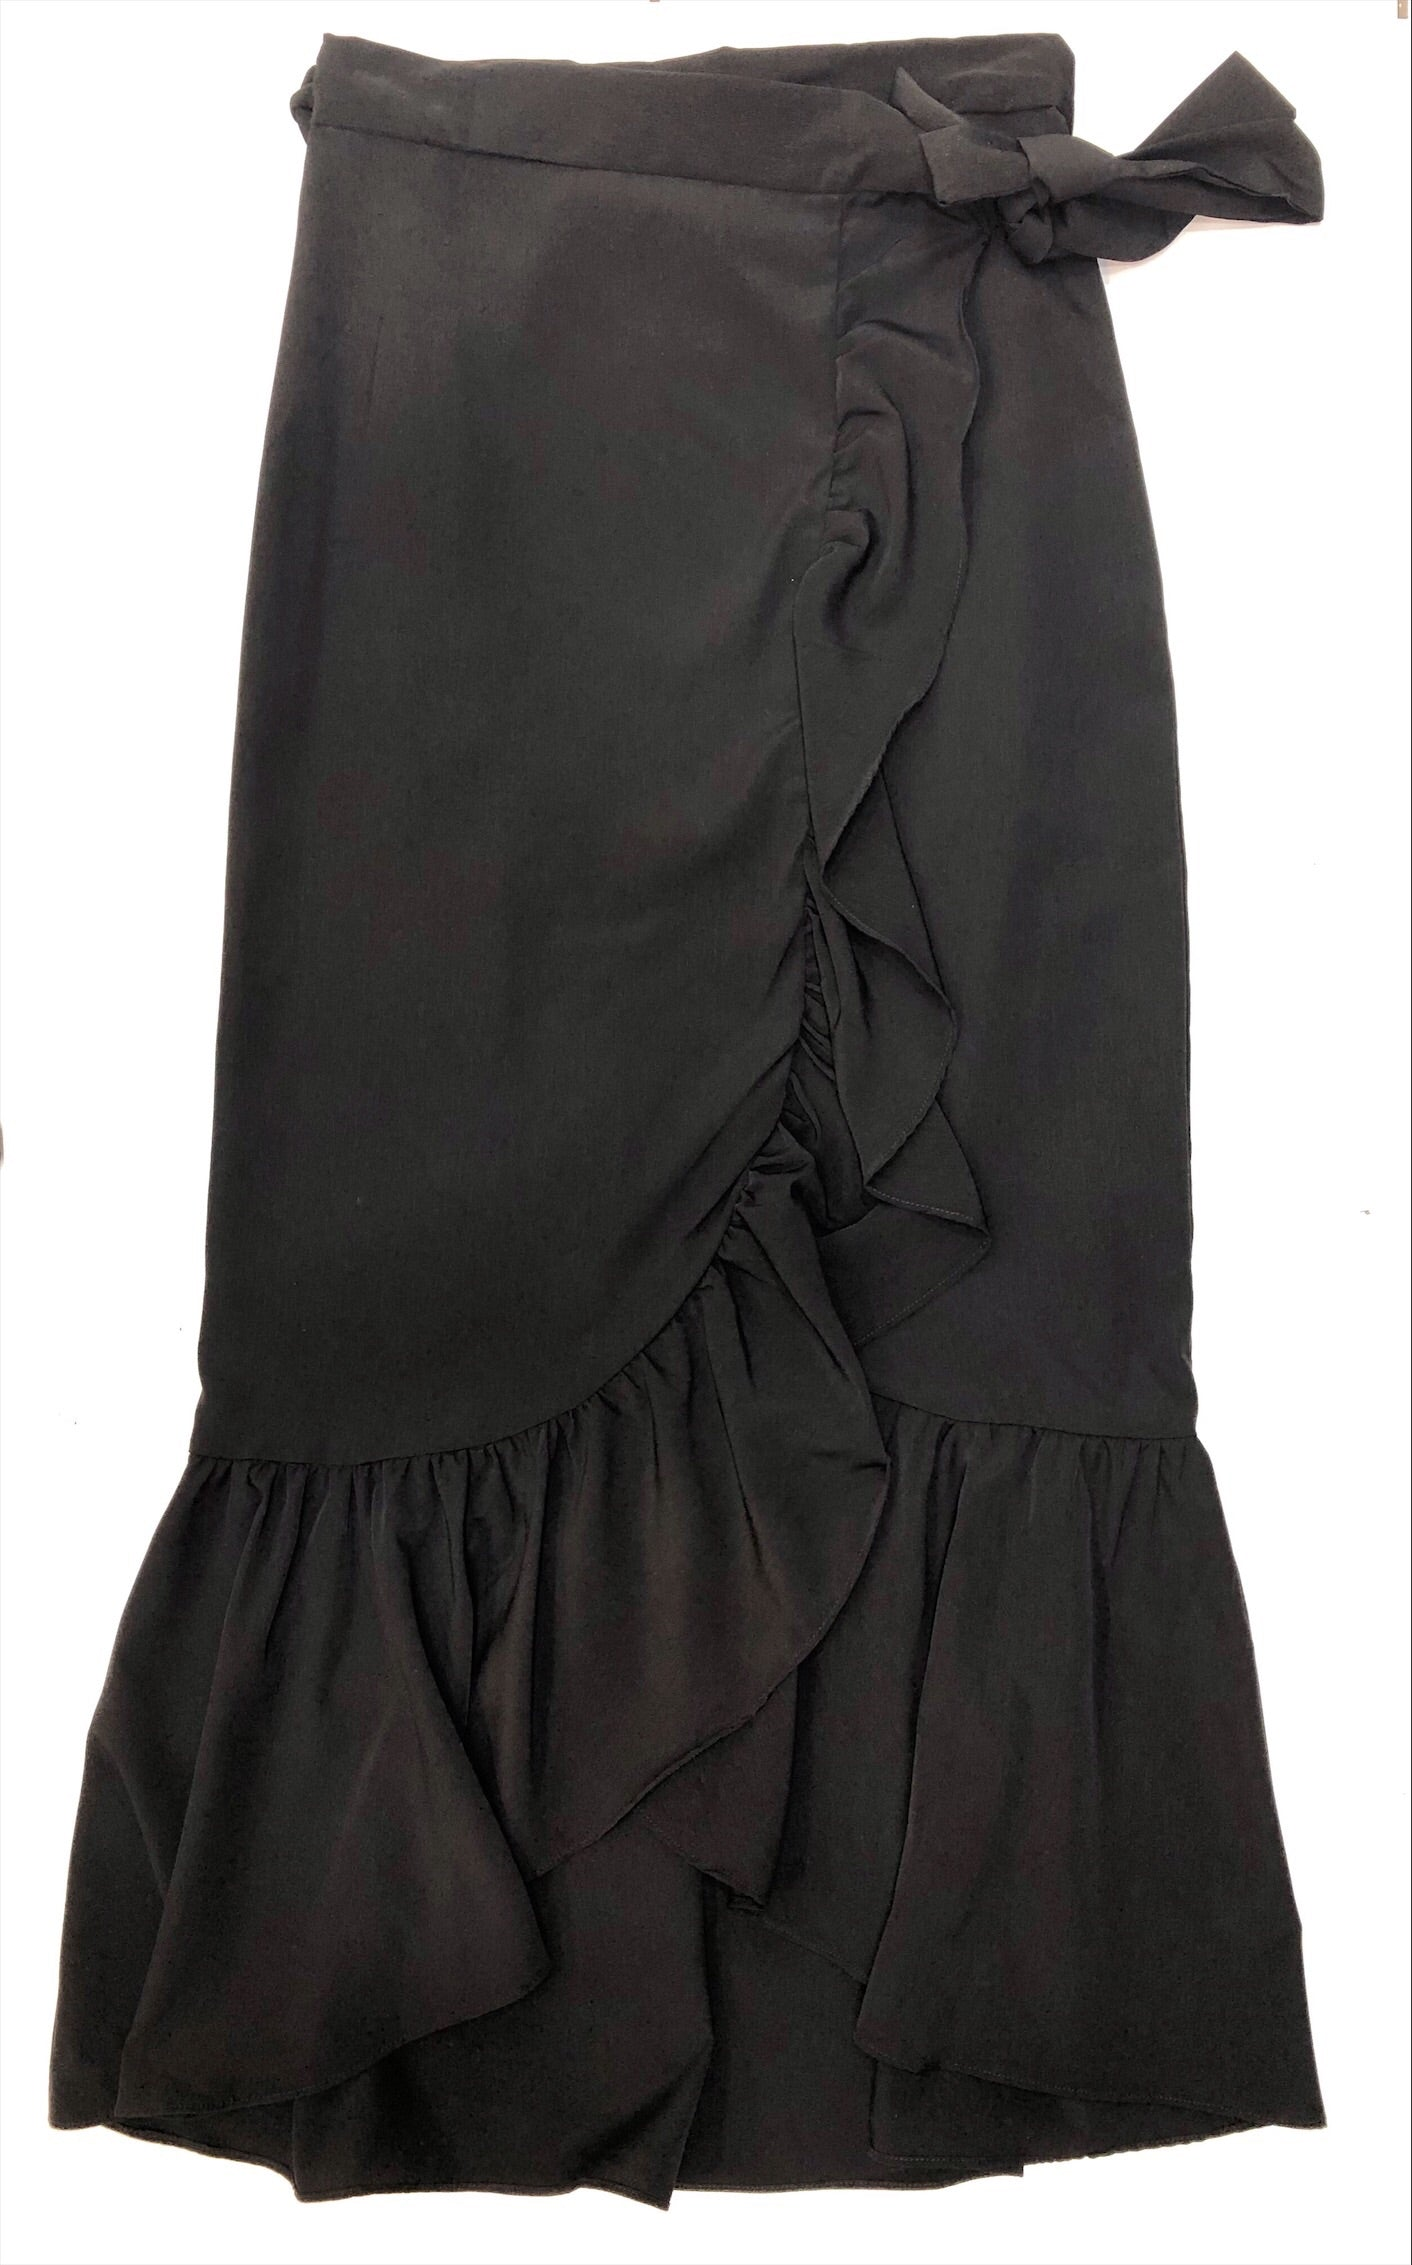 Ruffle Skirt In Black